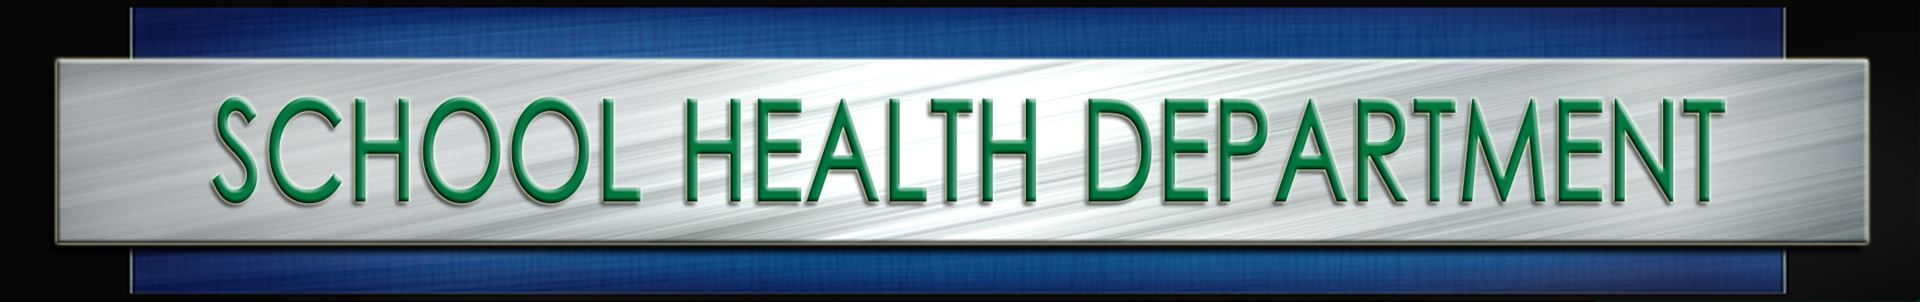 school health department header